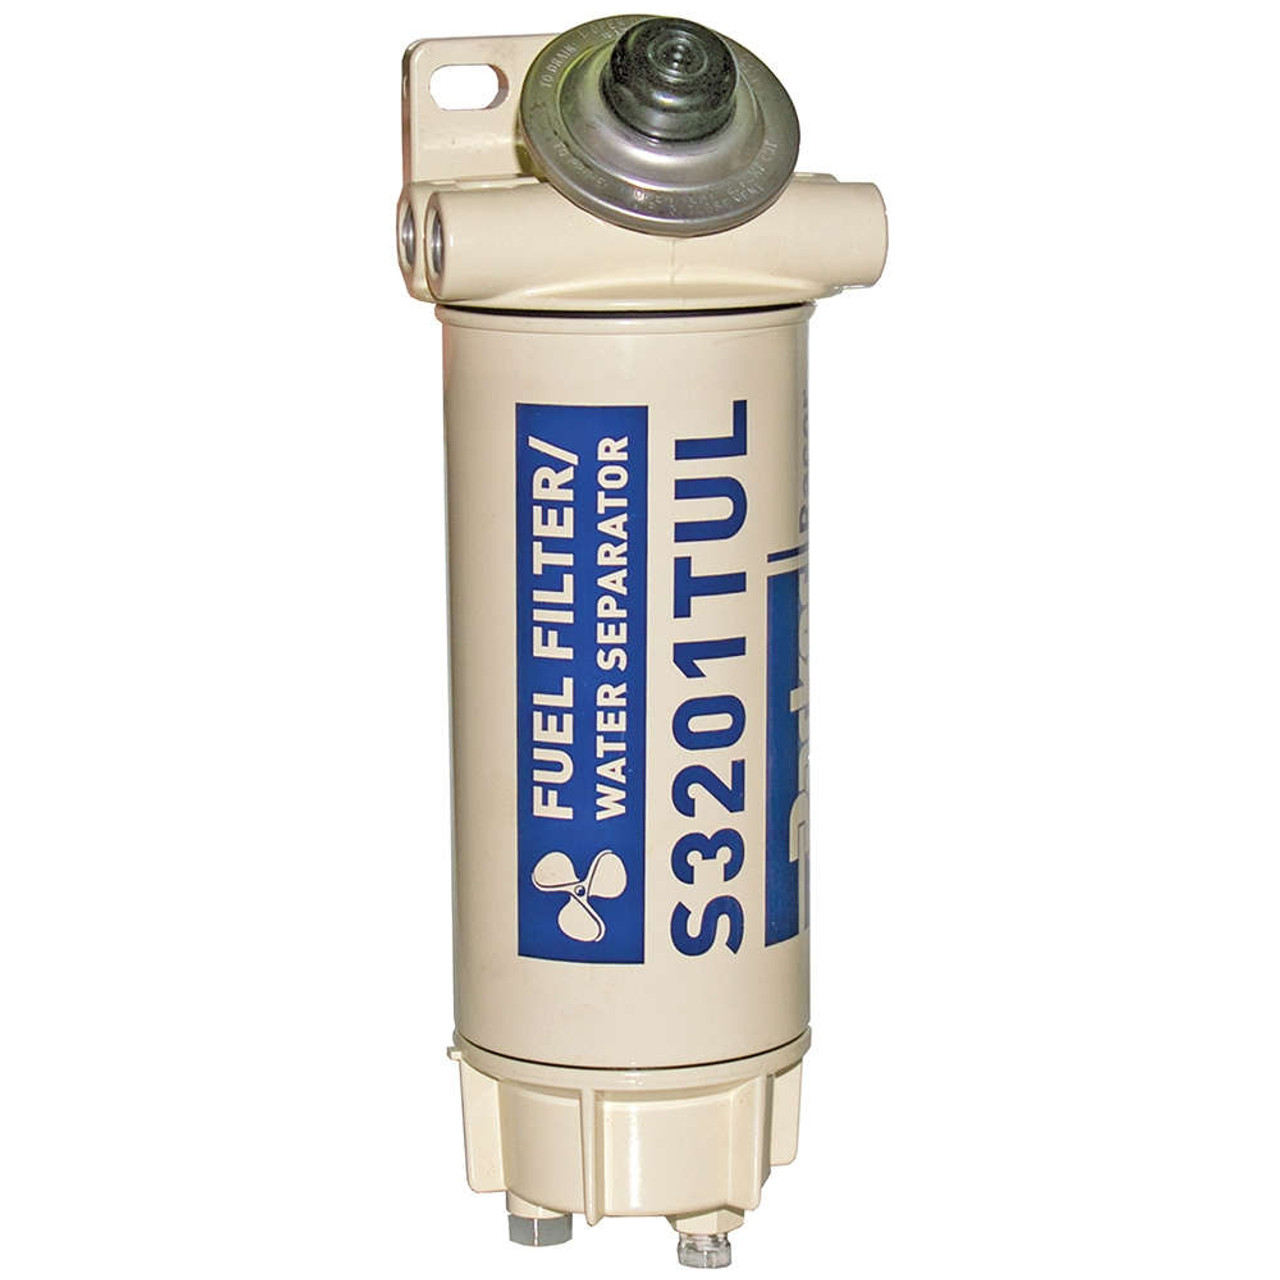 racor aquabloc marine 3/4 in  120 gph spin-on diesel fuel filter water  separator assembly - 6 qty - john m  ellsworth co  inc